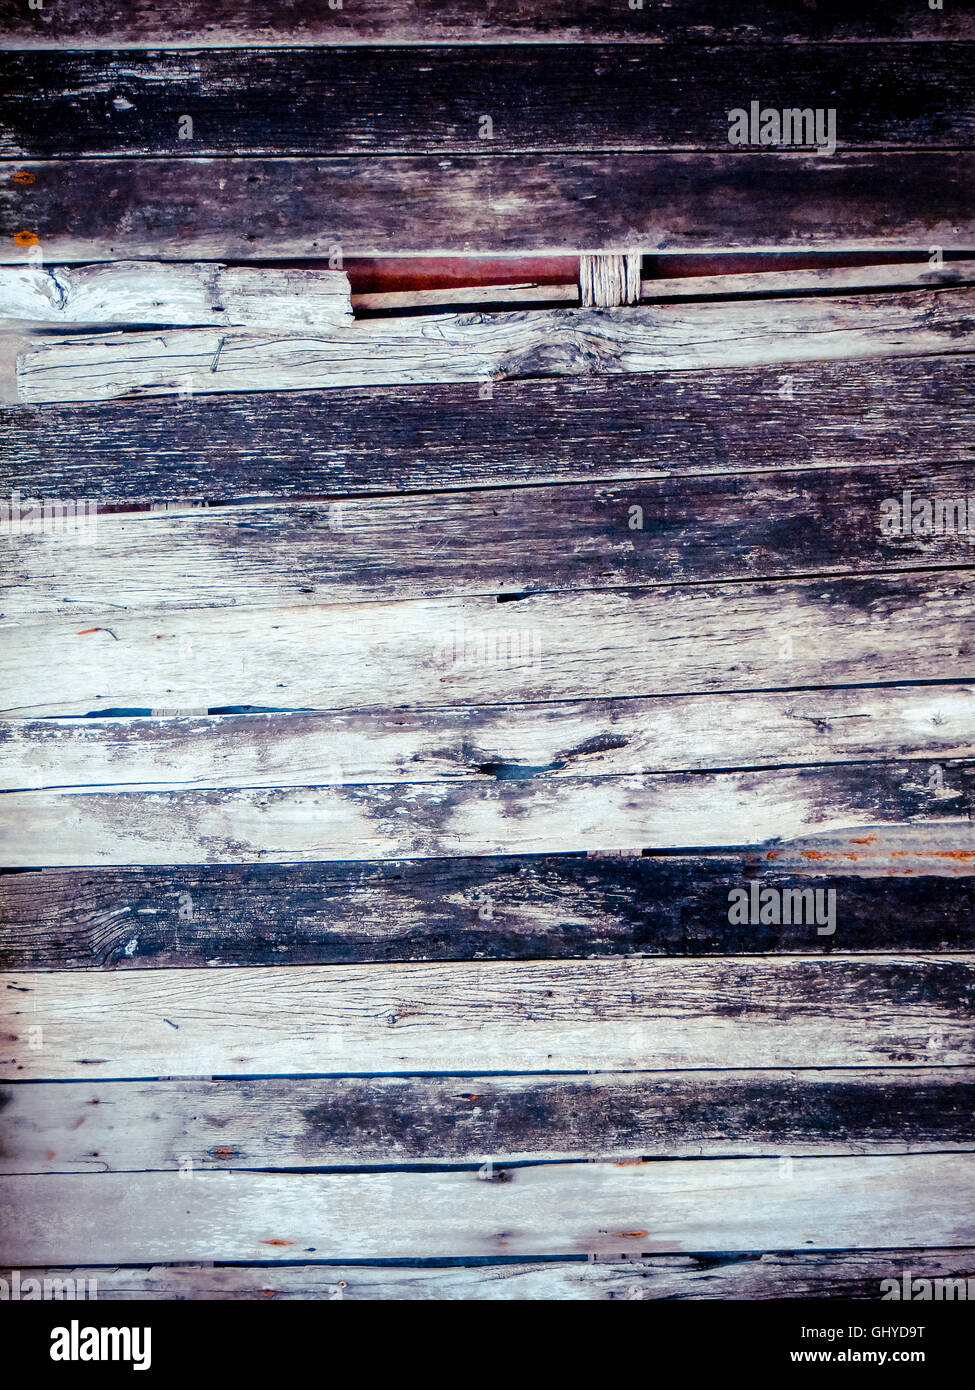 The old wood texture with natural patterns - Stock Image